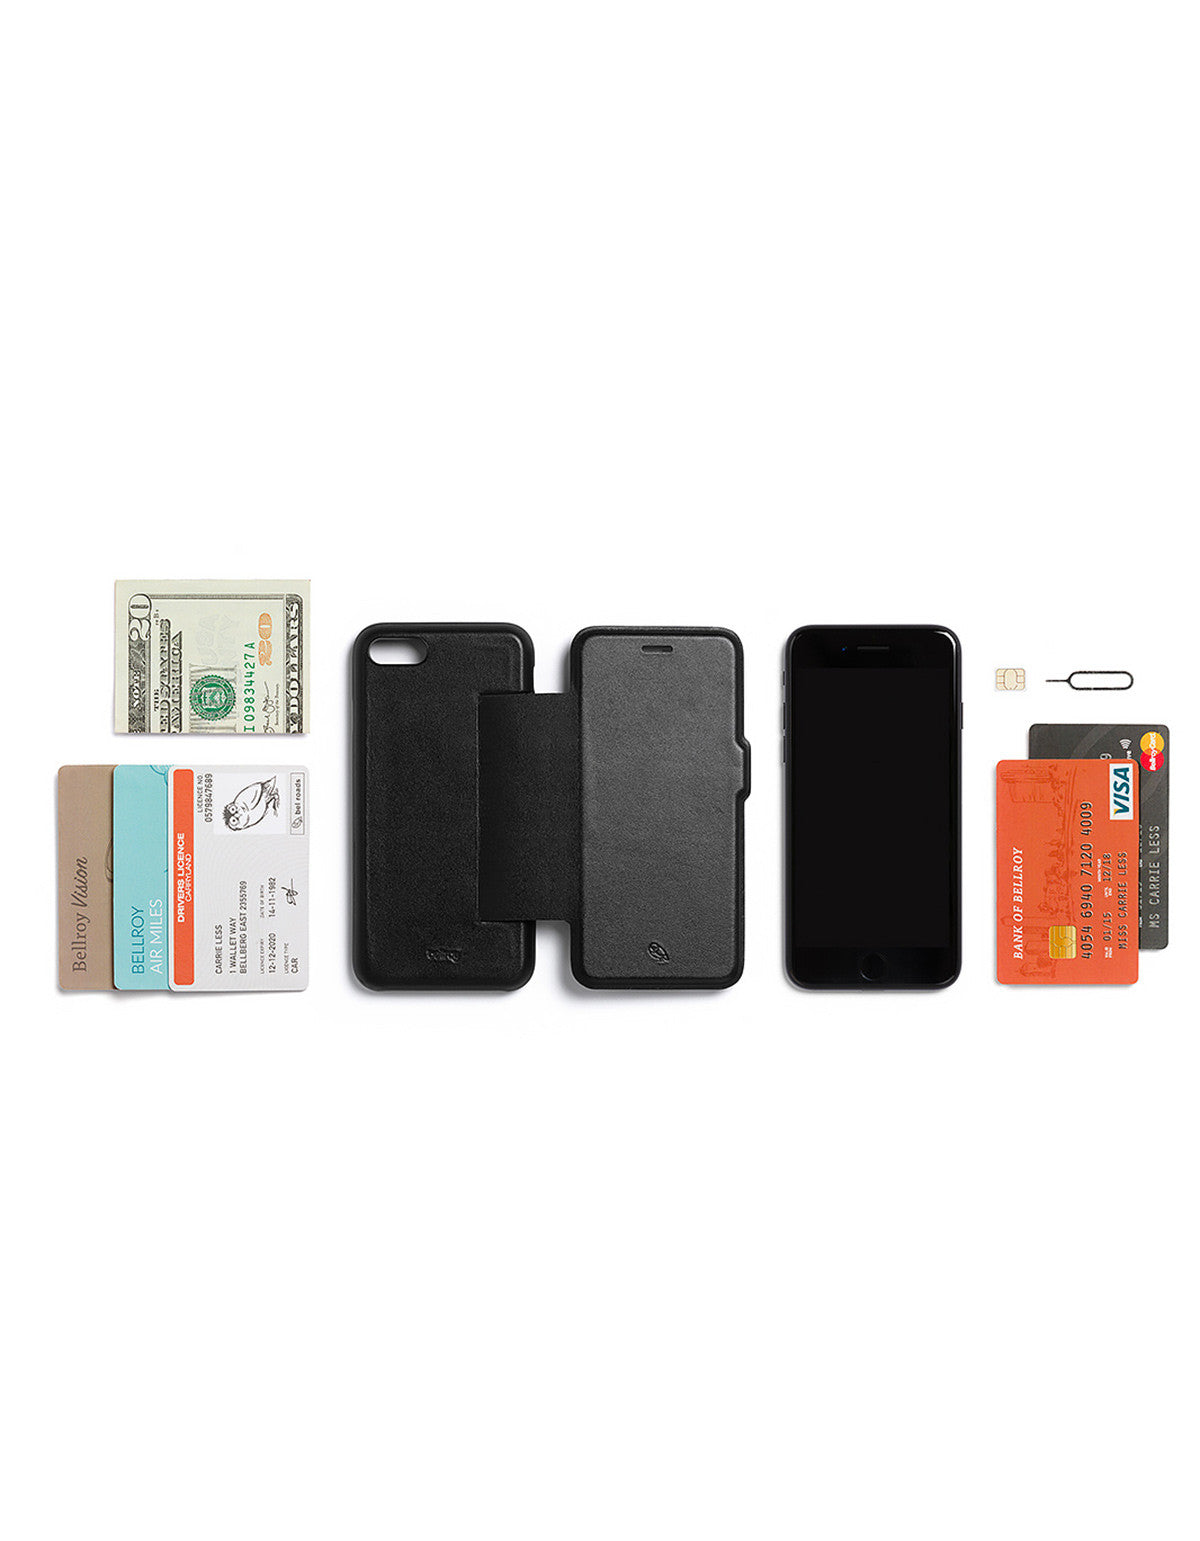 Bellroy Phone Wallet i7 Black - Still Life - 5